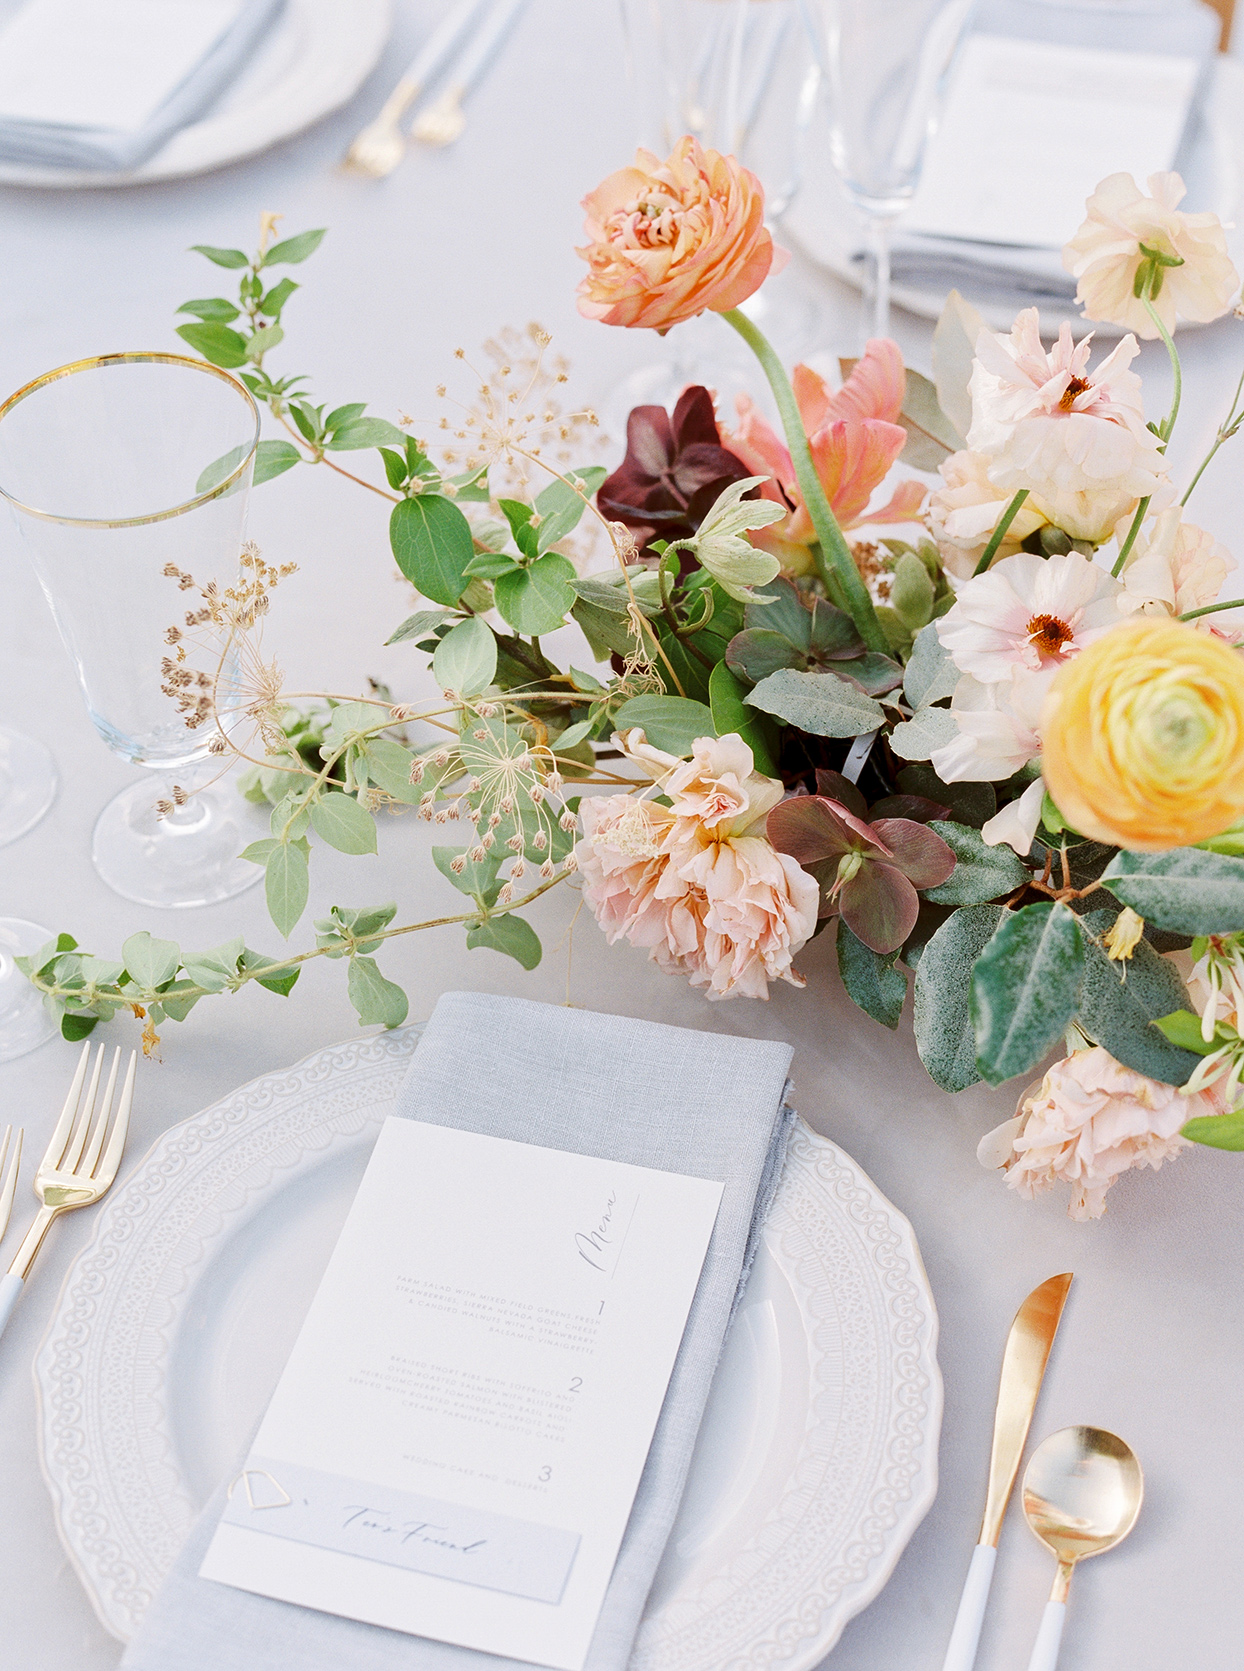 thuy kahn wedding place setting white plate floral centerpiece